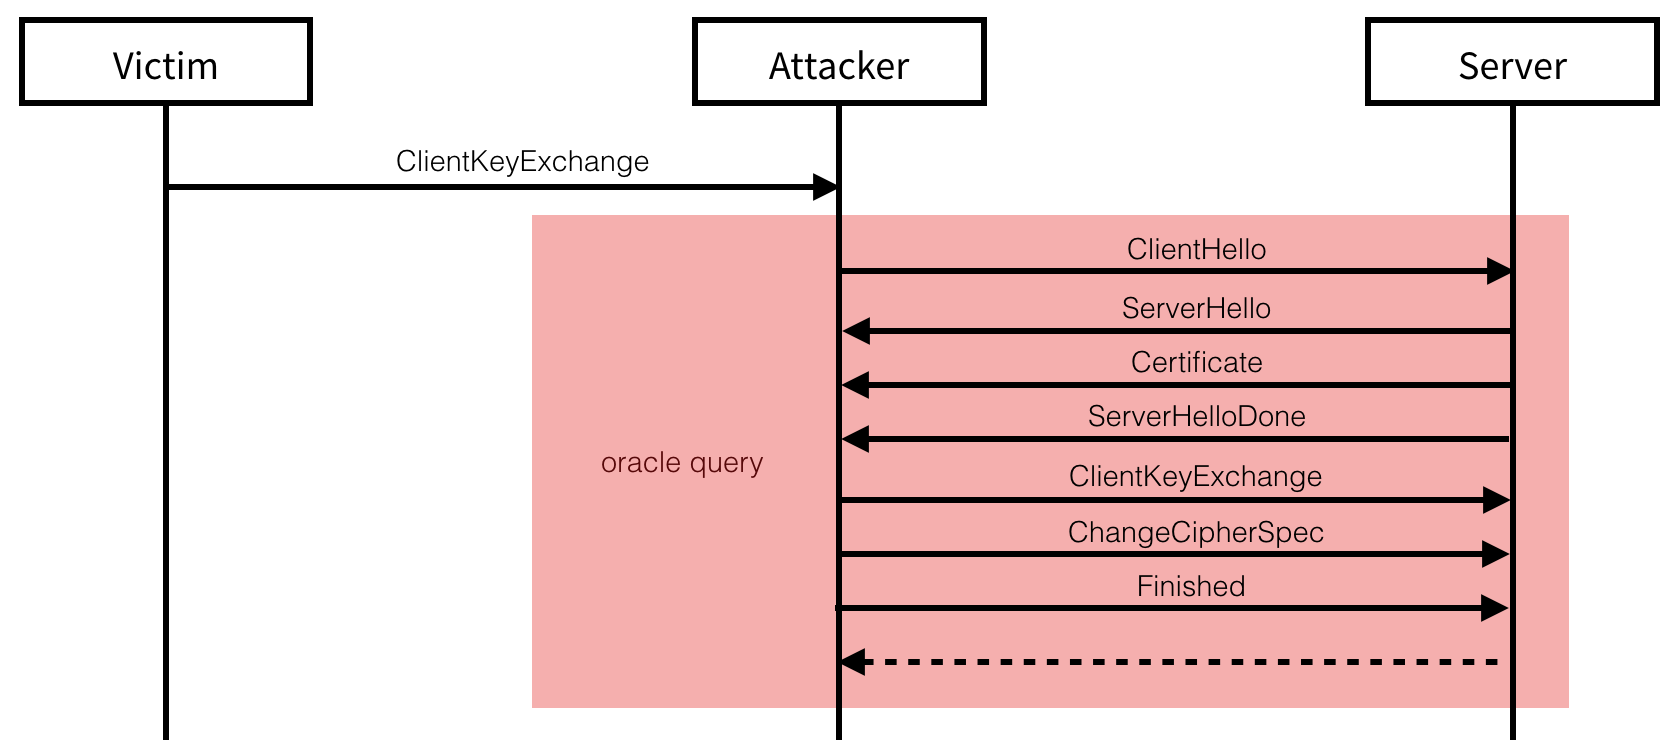 The Decryption Attack performs a new handshake with the server, using a modified encrypted premaster secret obtained from the victim's `ChangeCipherSpec` message.